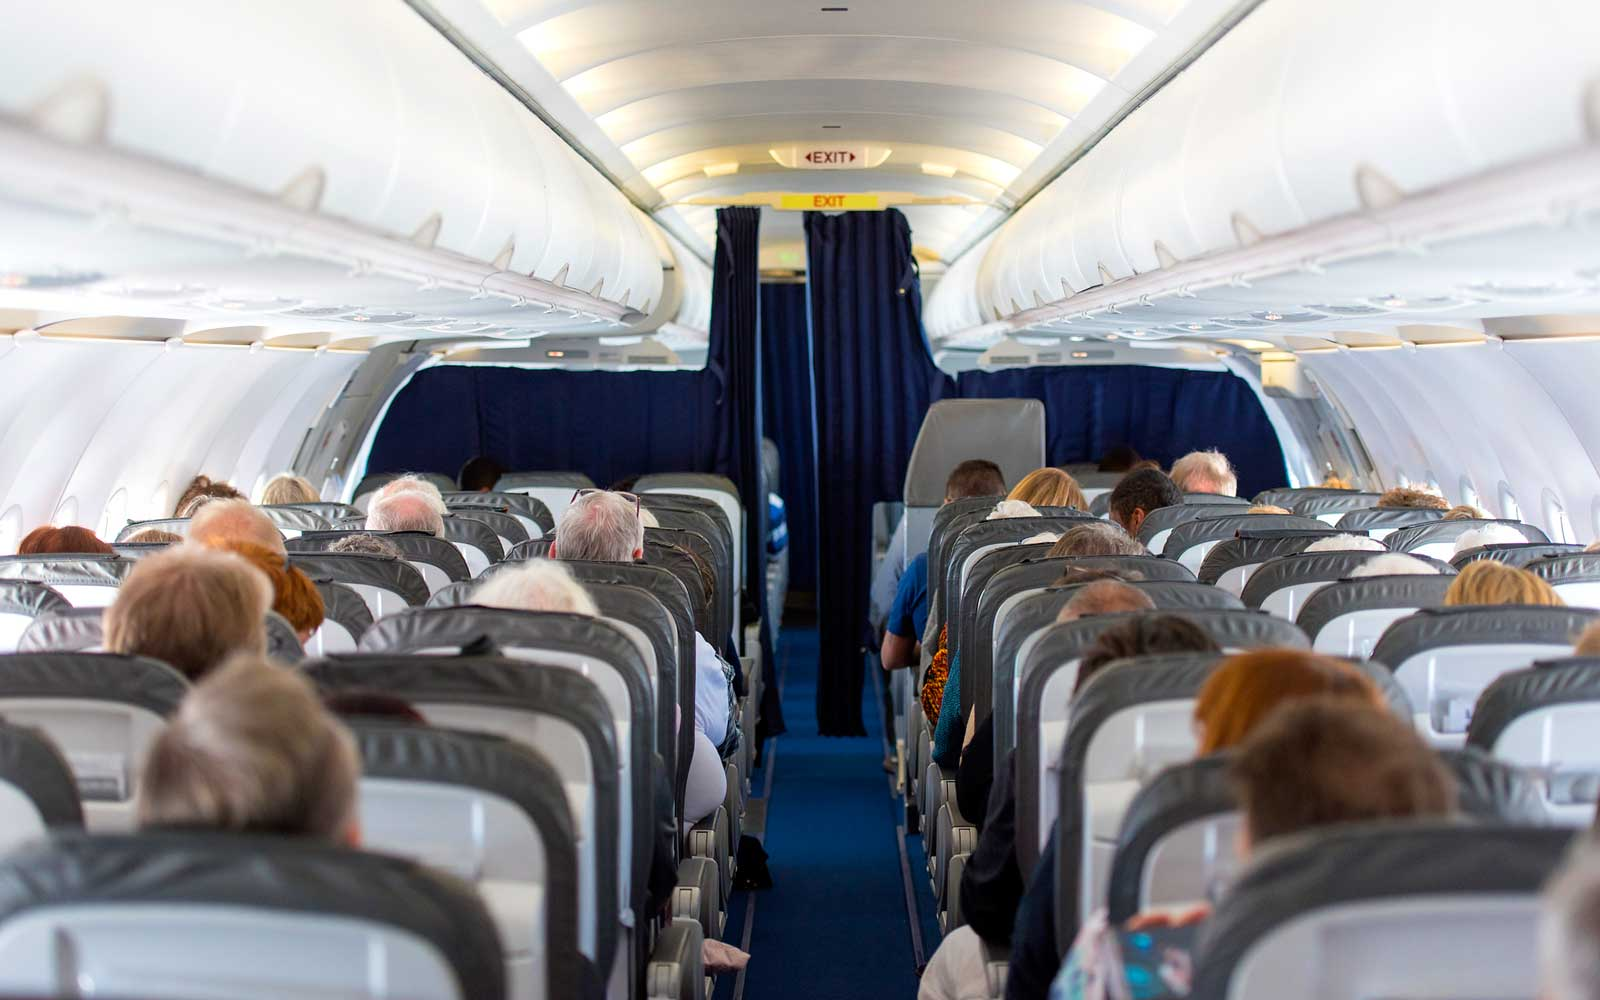 Commercial aircraft cabin with passengers